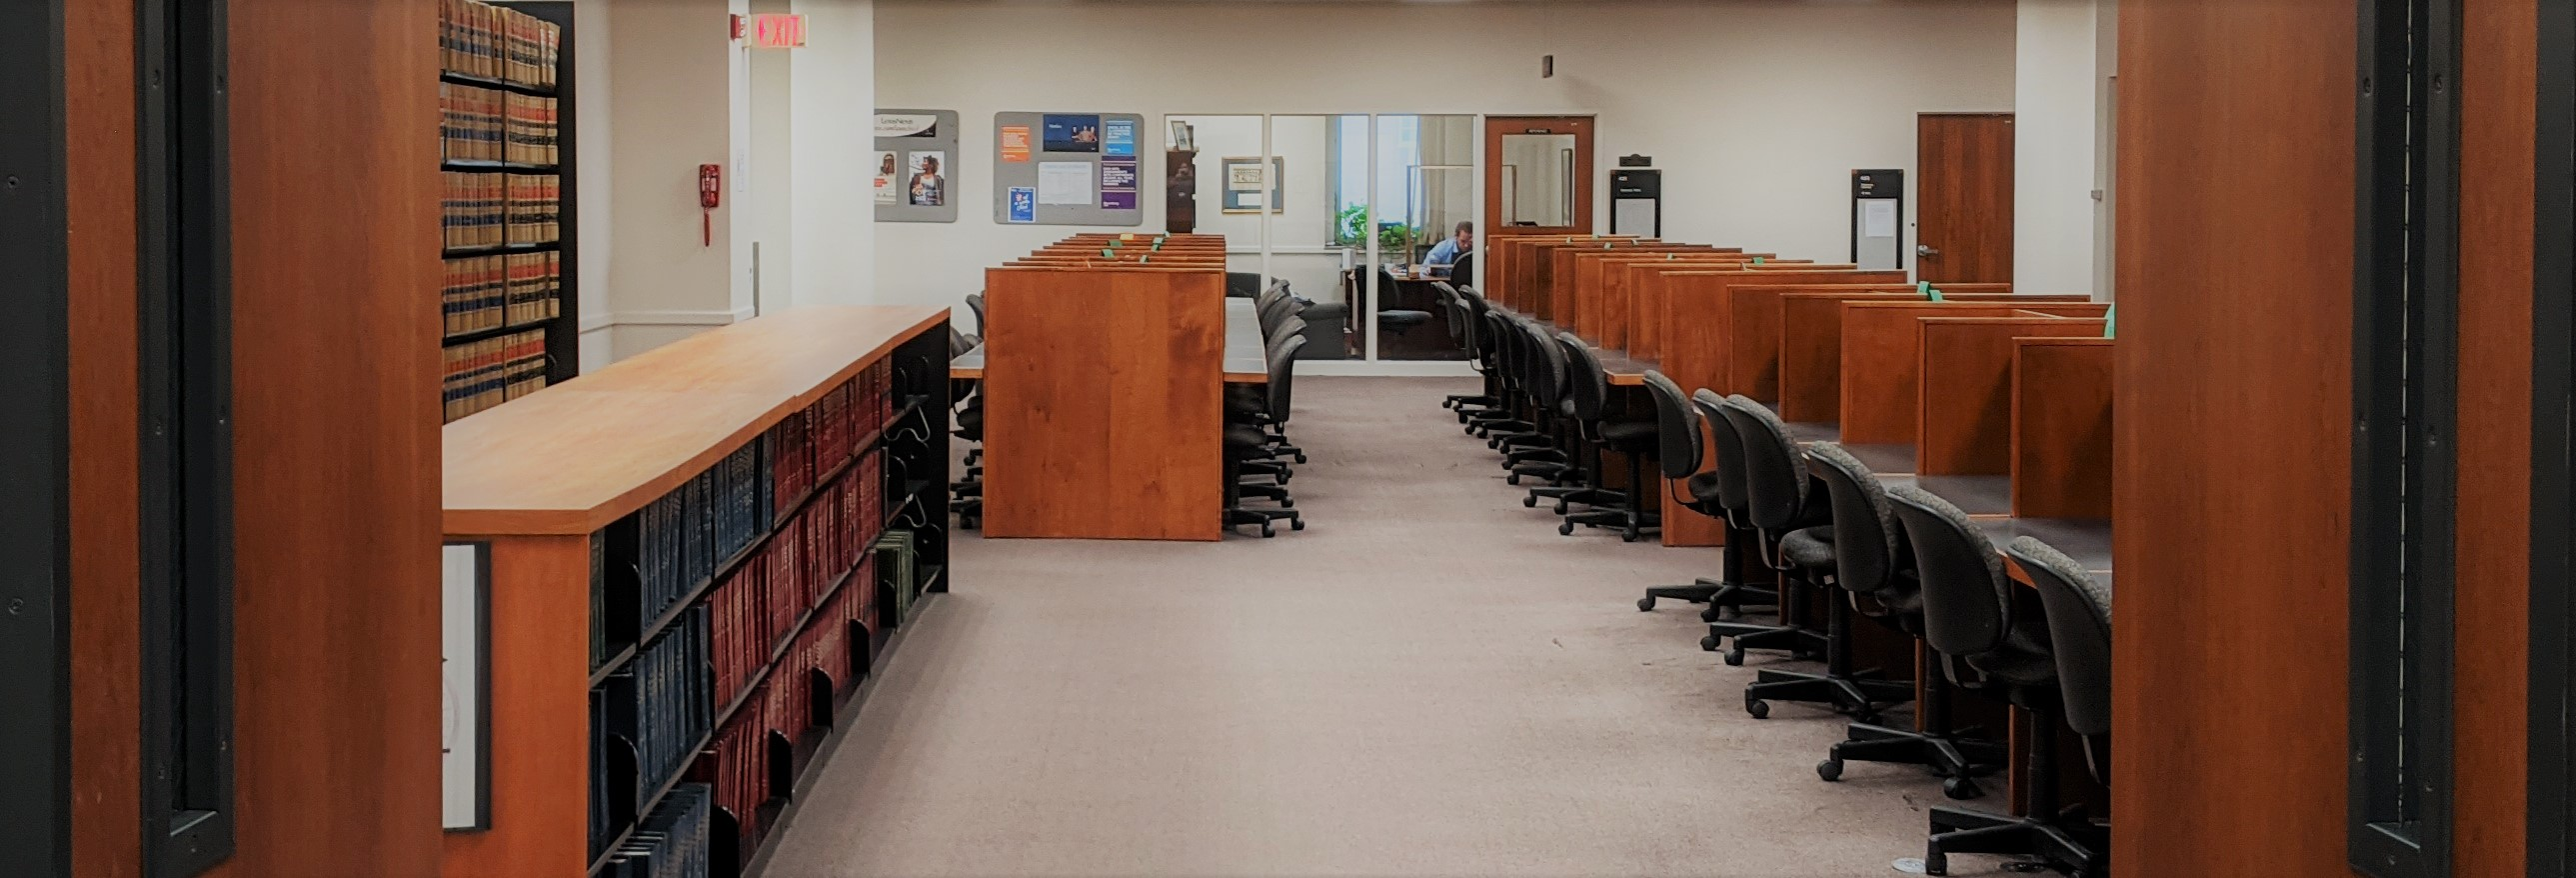 Image of the law library carrels and stacks